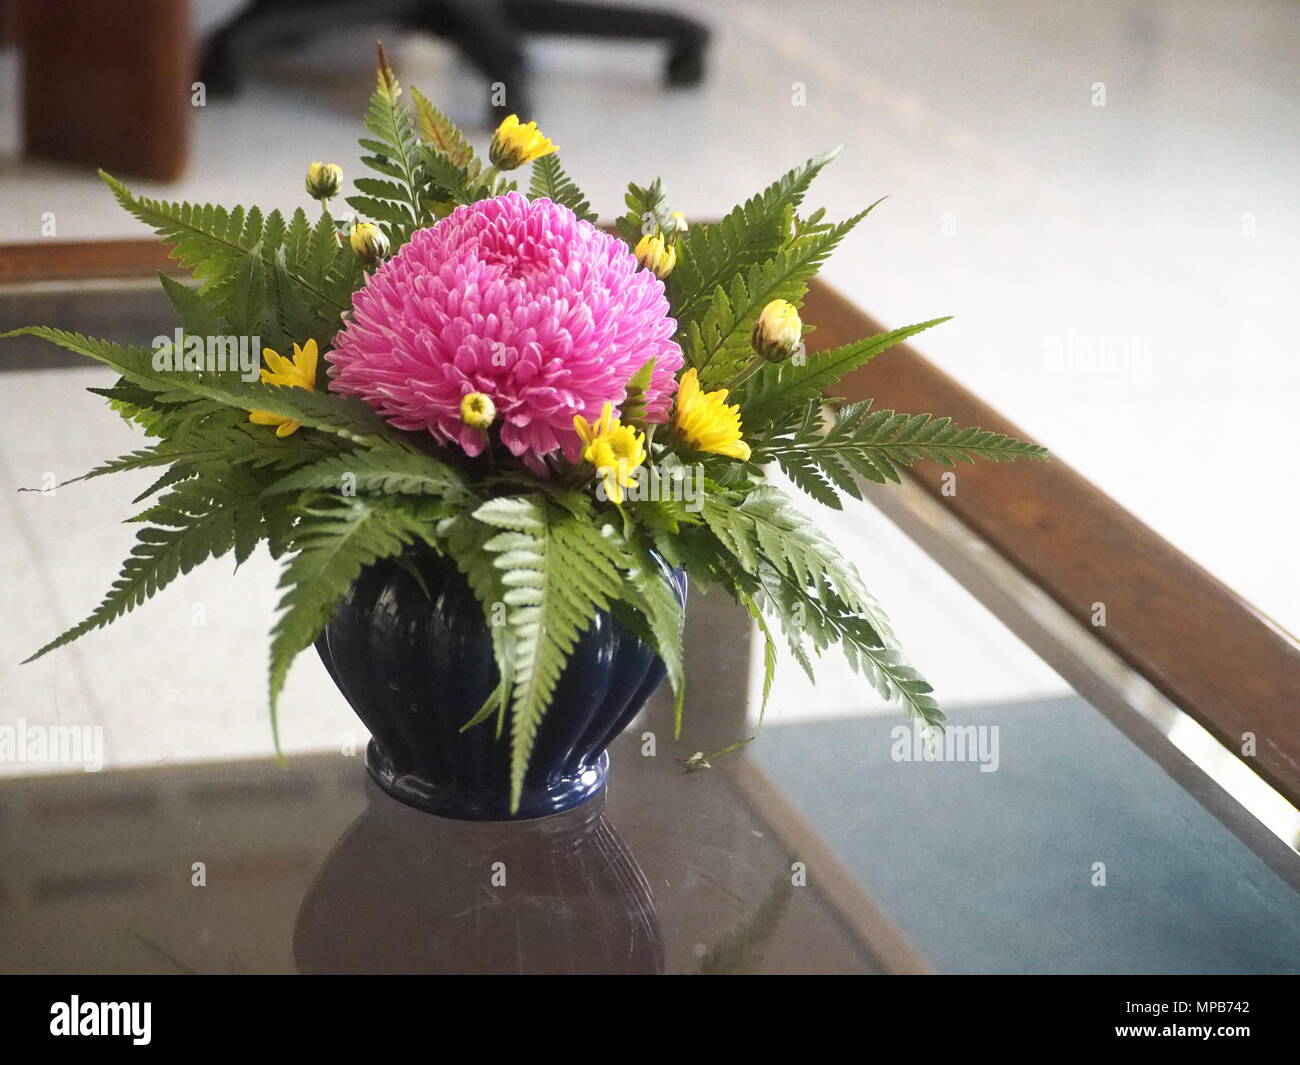 Tabletop Flower Arrangement On A Glass Coffee Table In An Office Waiting Area Stock Photo Alamy